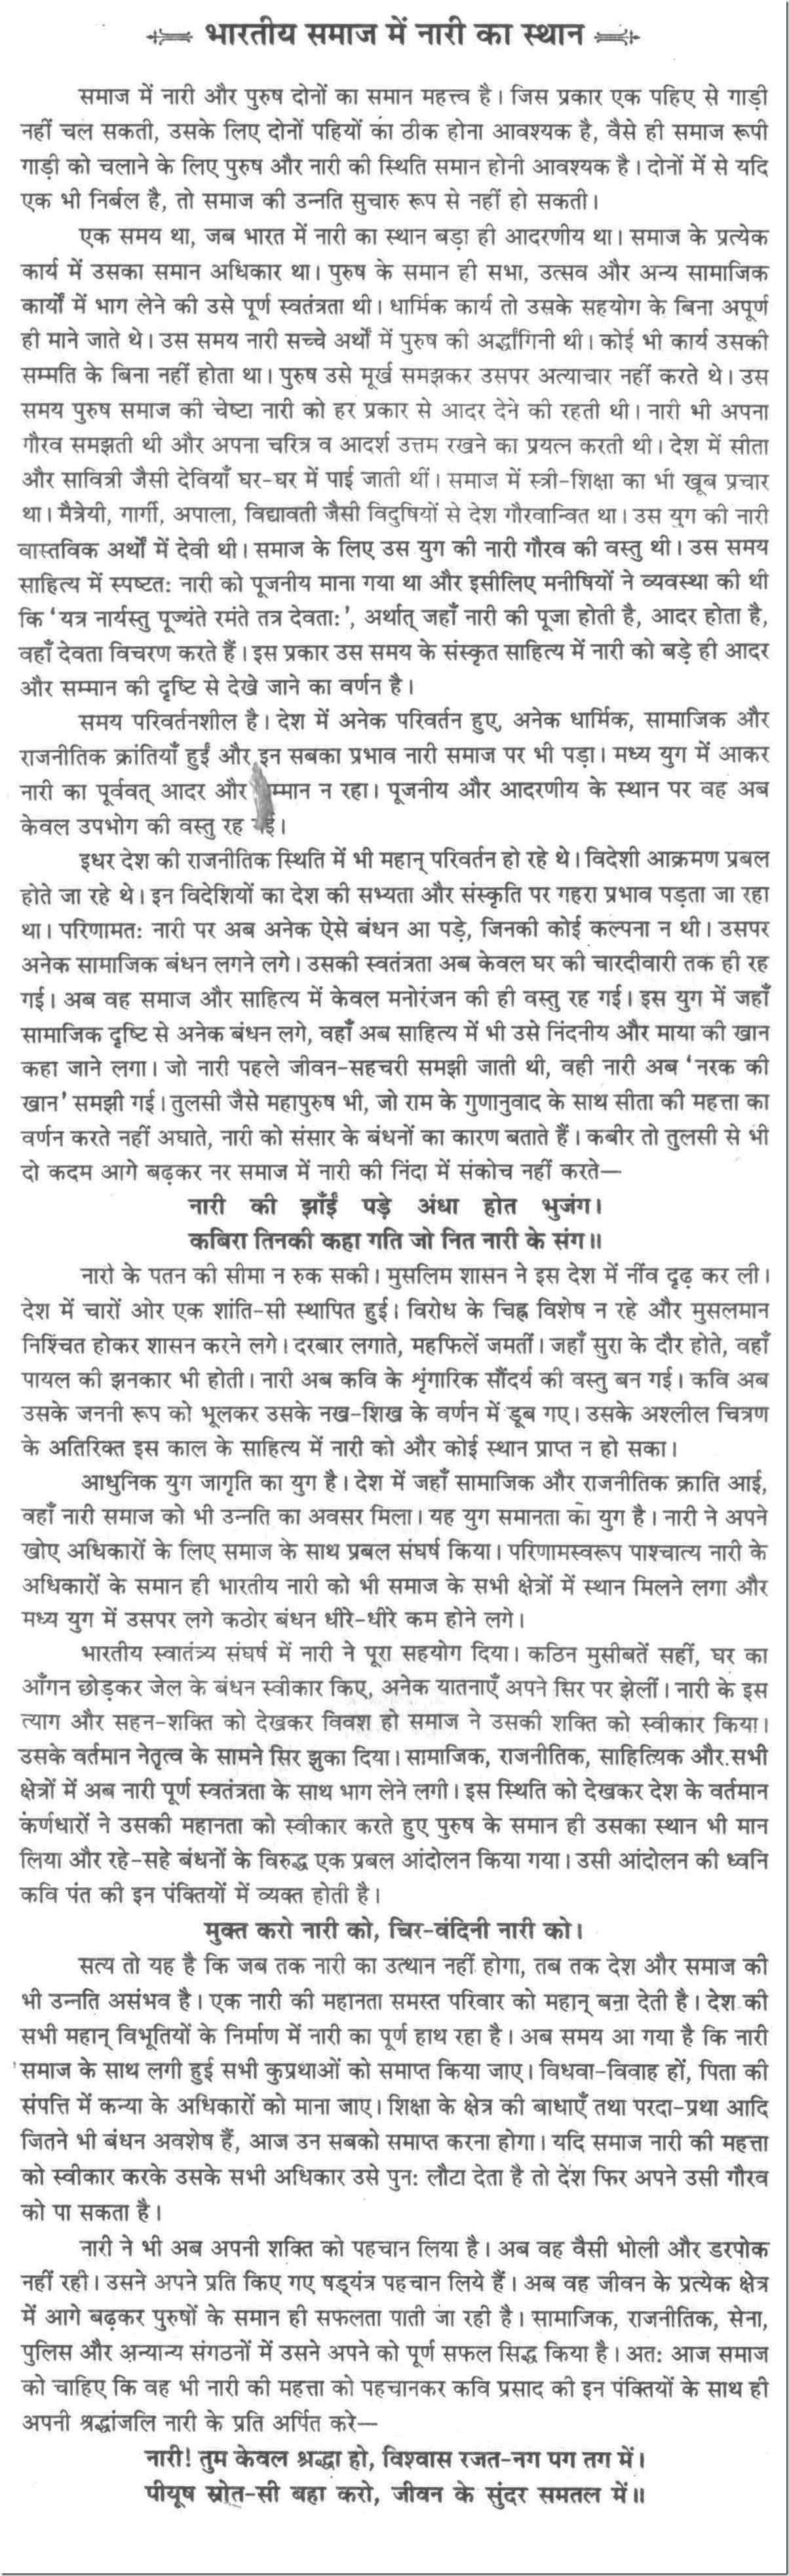 Read This Essay On Women S Role In The Society In Hindi Language Home Related Essays Essay On Th Math Problem Solving Critical Essay Maths Investigations